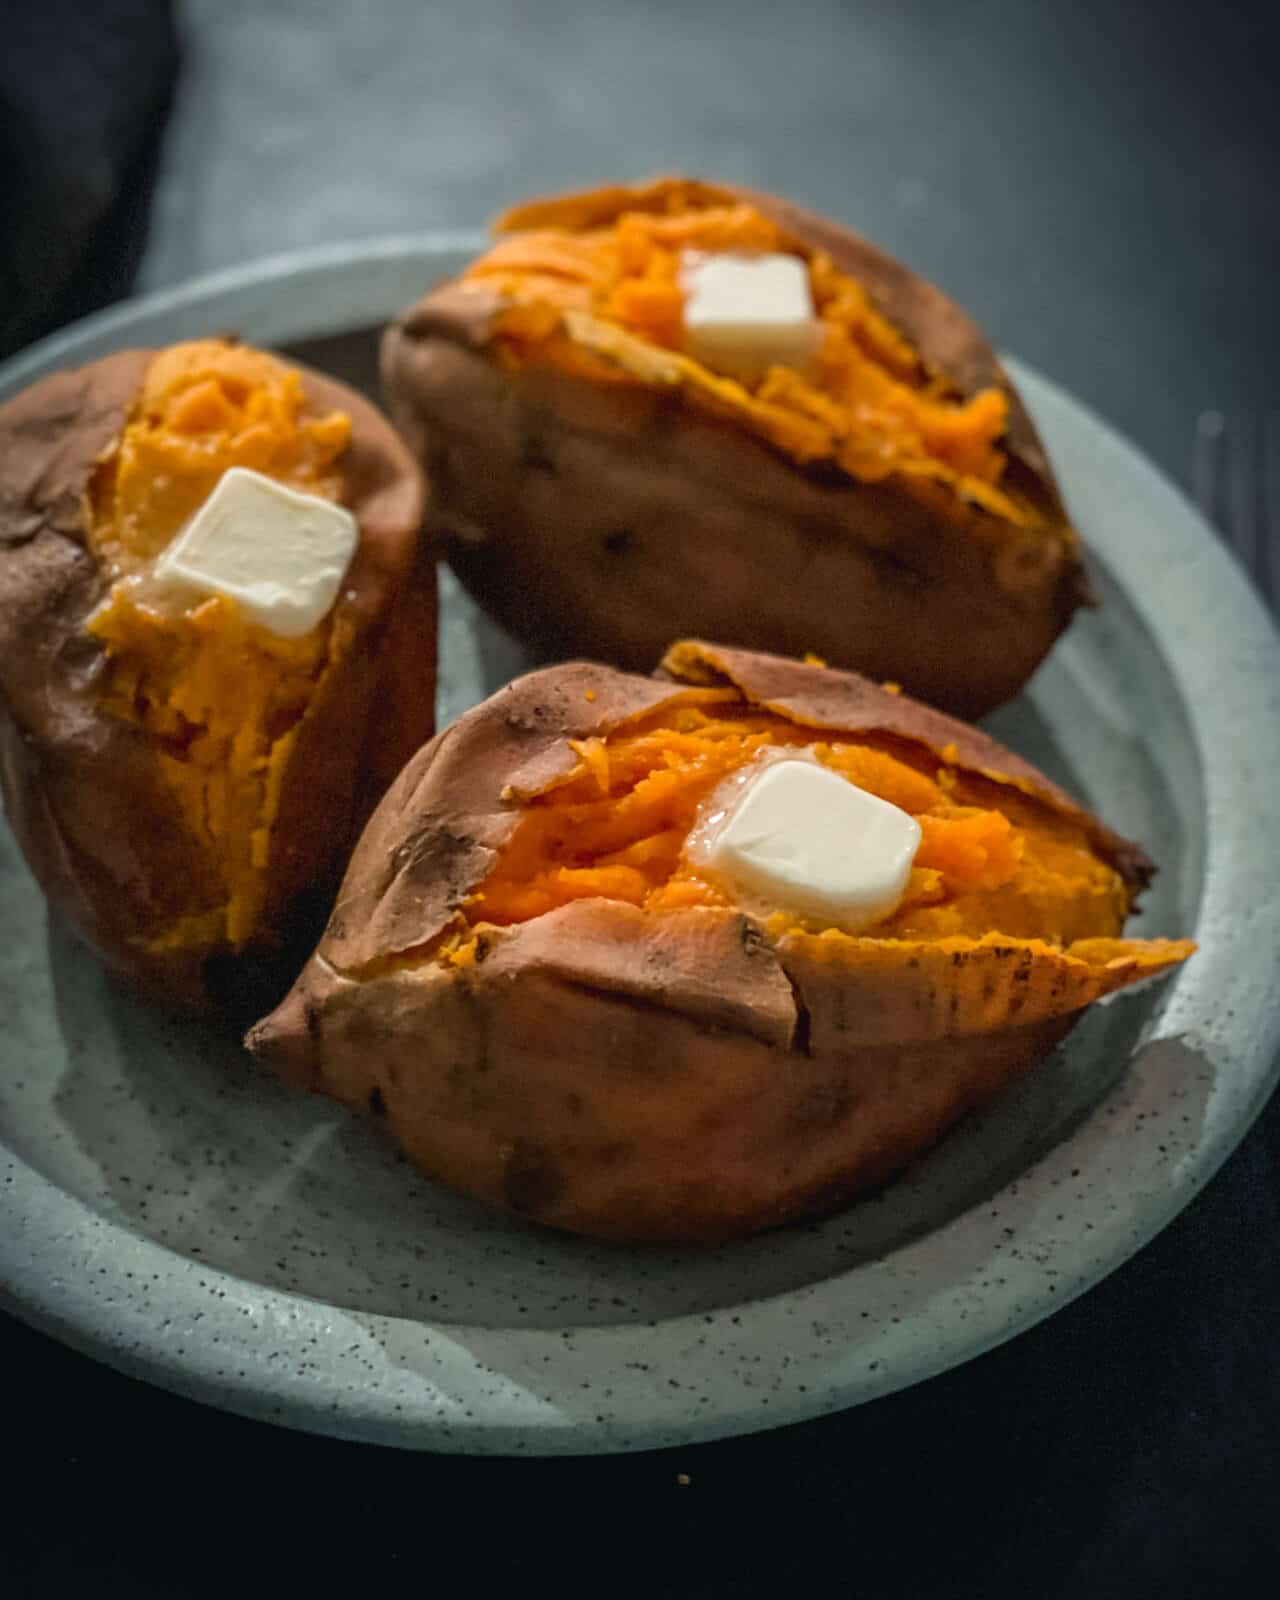 Three baked sweet potatoes cut down the middle with a pad of butter on top on a blue plate.